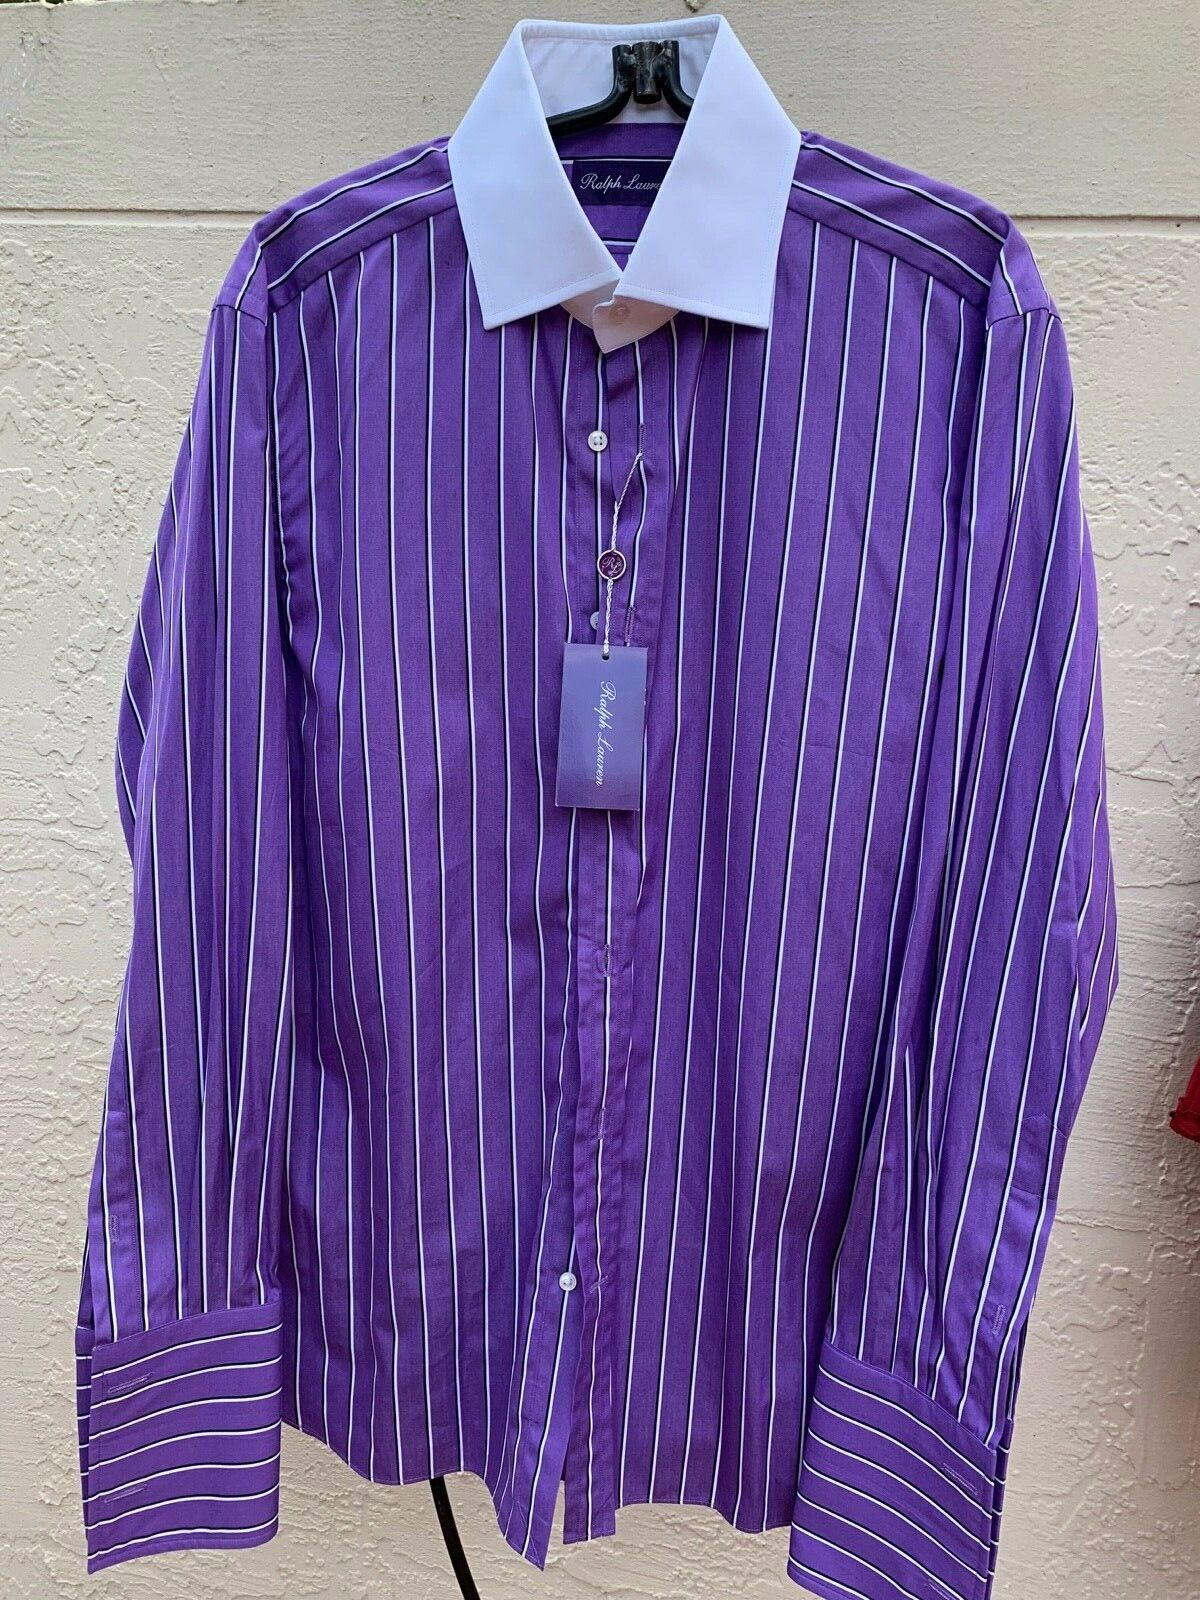 NWT  450 RALPH LAUREN PURPLE LABEL STRIPE WHITE COLLAR FRENCH CUFF SHIRT SZ 15.5